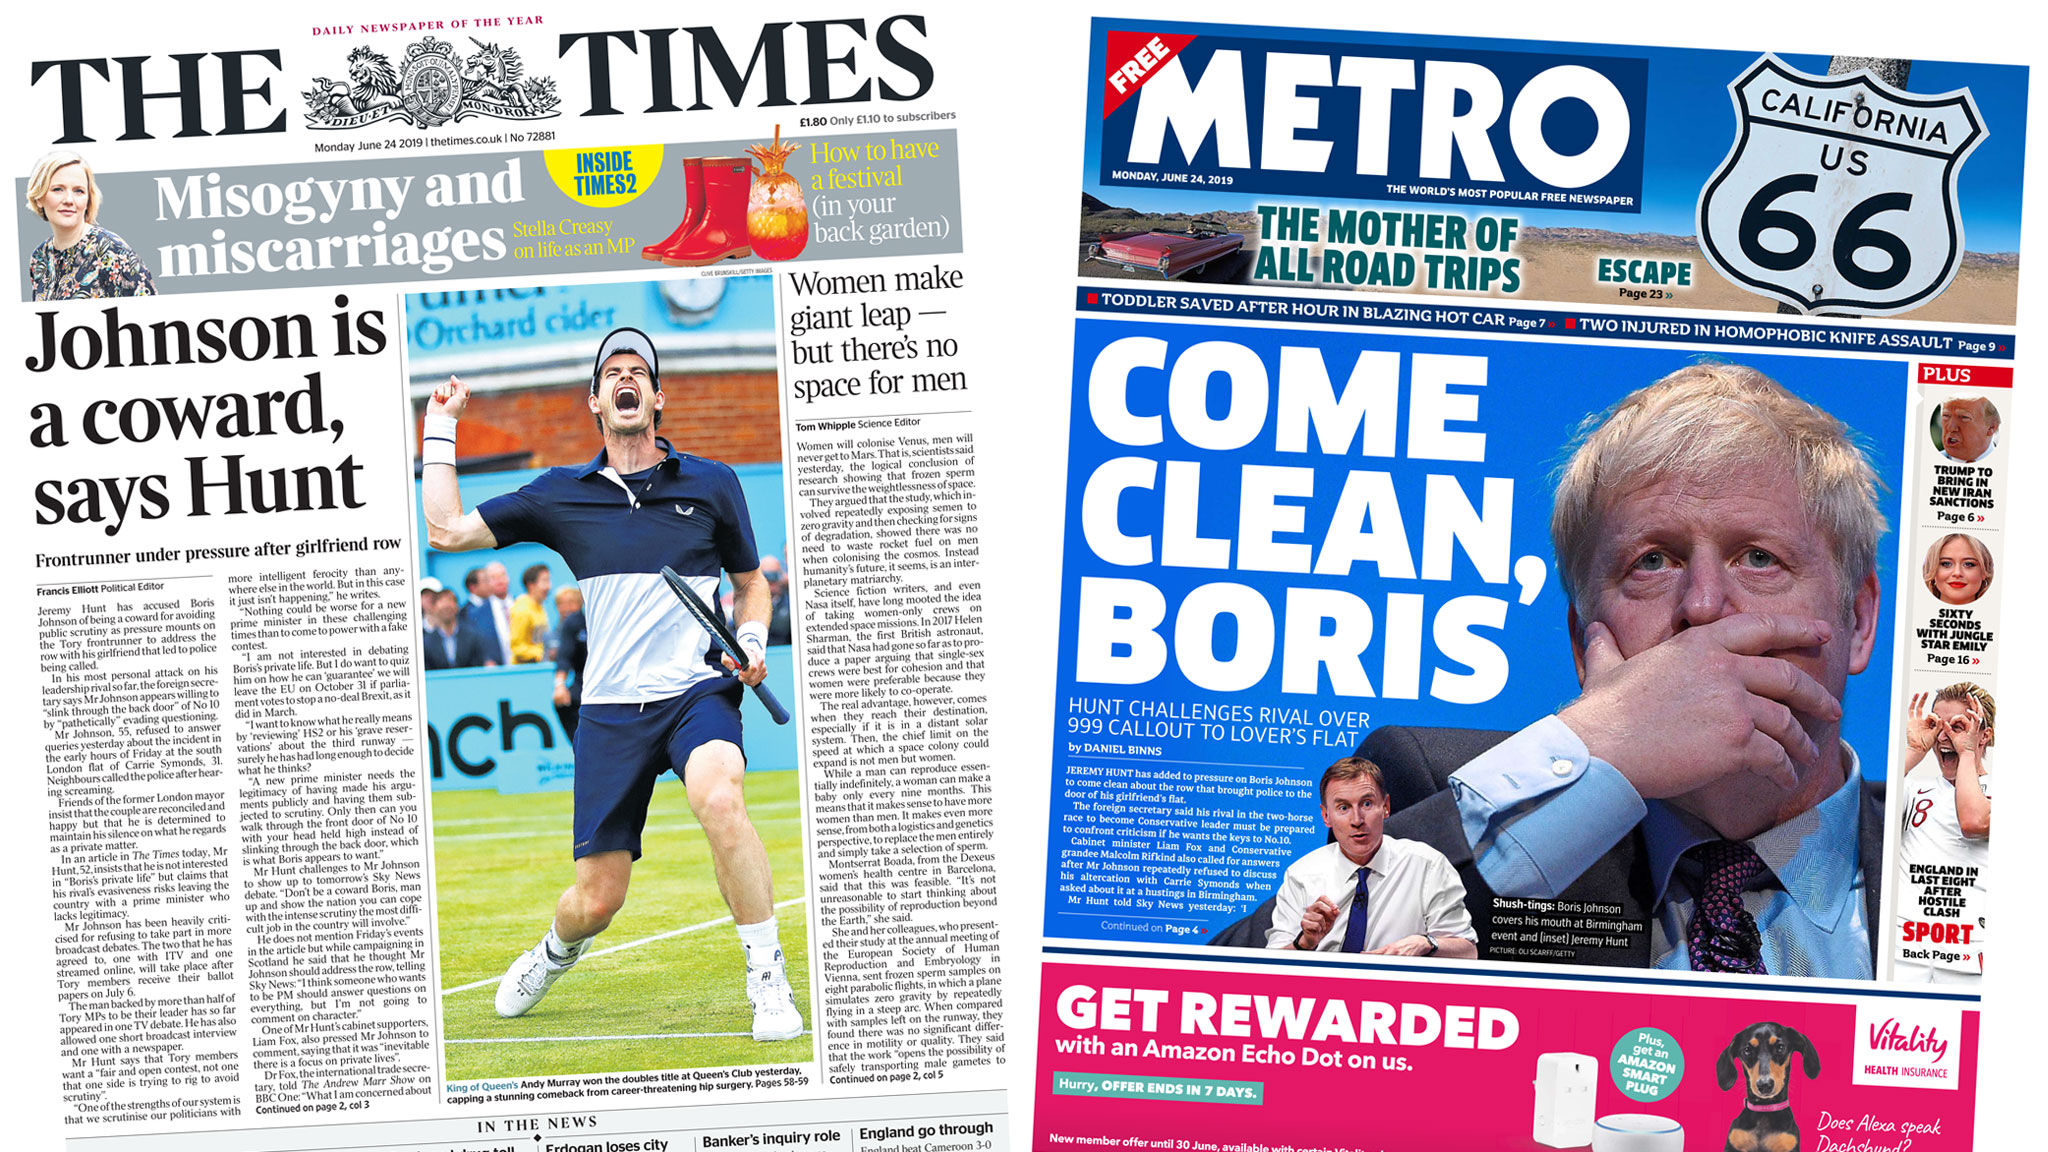 Paper review: Pressure on Johnson to 'come clean' on partner row